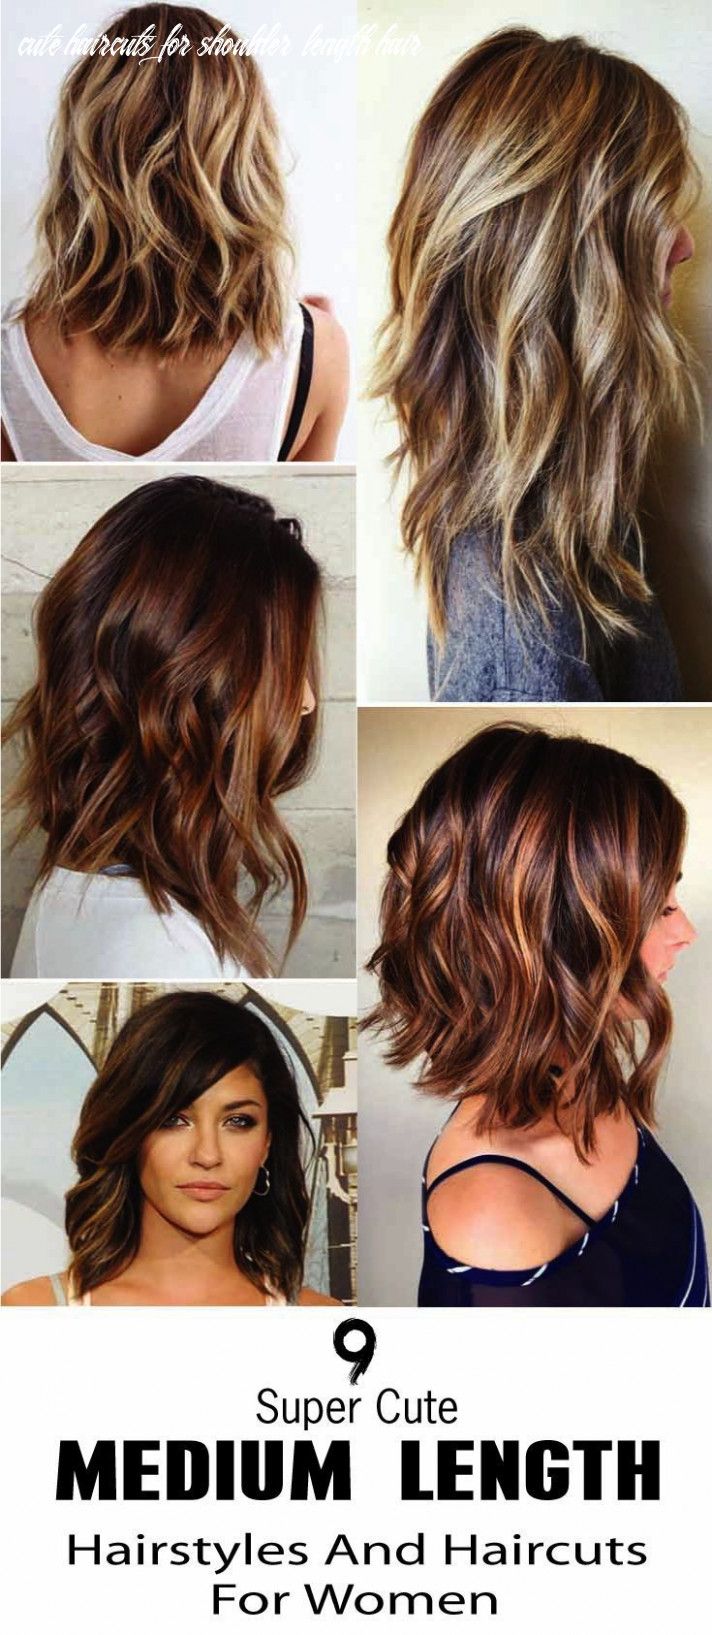 Pin on hair inspo cute haircuts for shoulder length hair